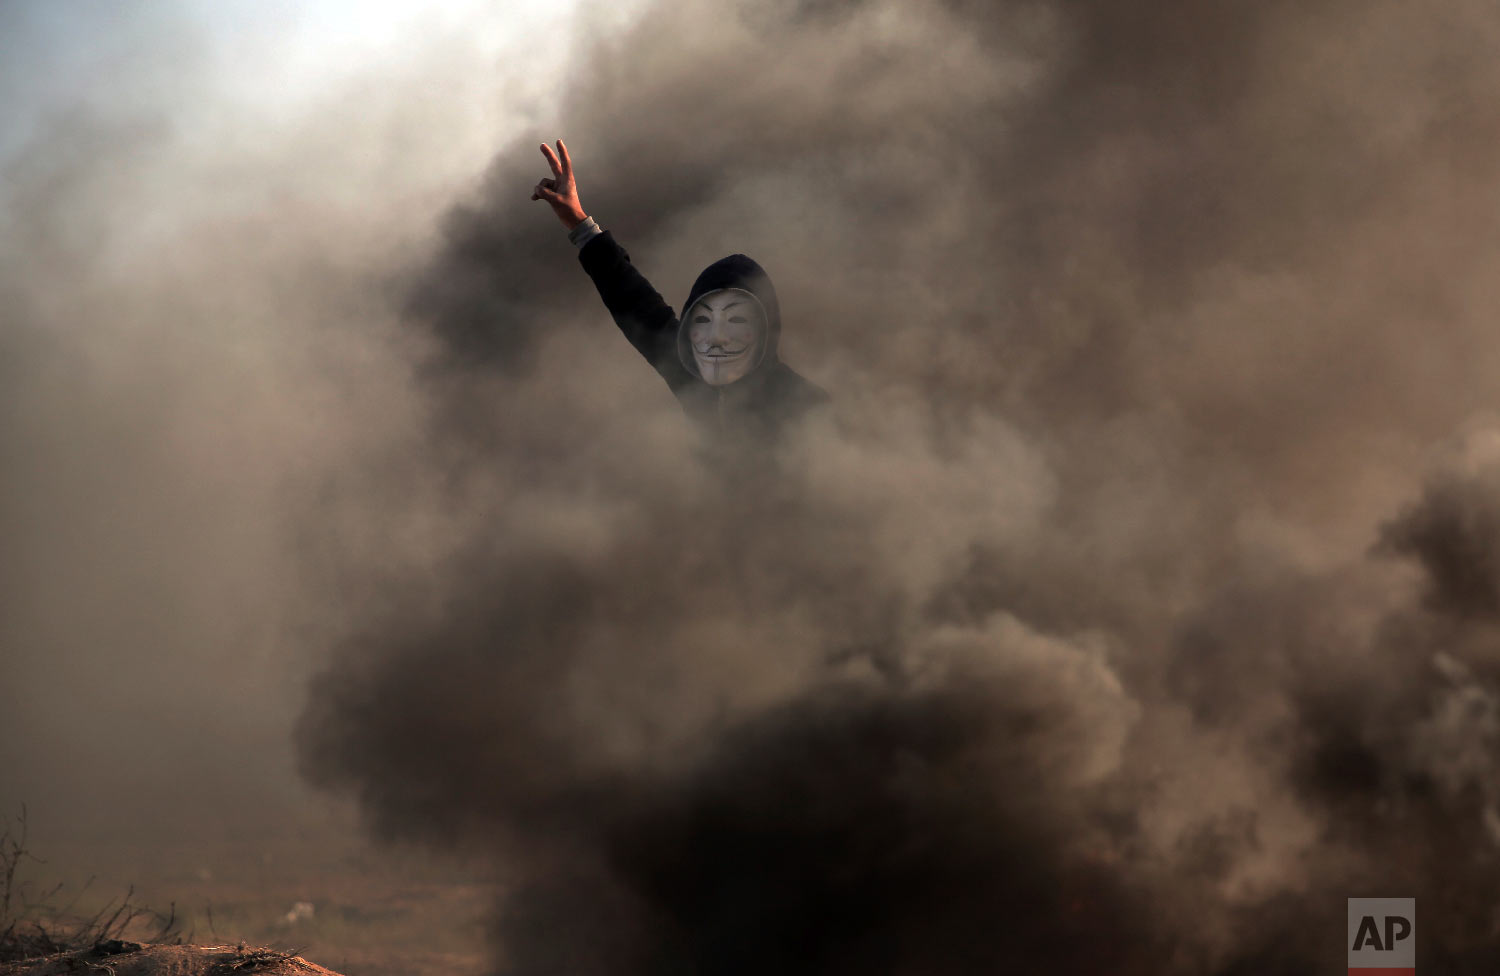 A Palestinian protester flashes the V sign during a protest near the Gaza Strip border with Israel, in eastern Gaza City, Saturday, March 31, 2018. (AP Photo/ Khalil Hamra)